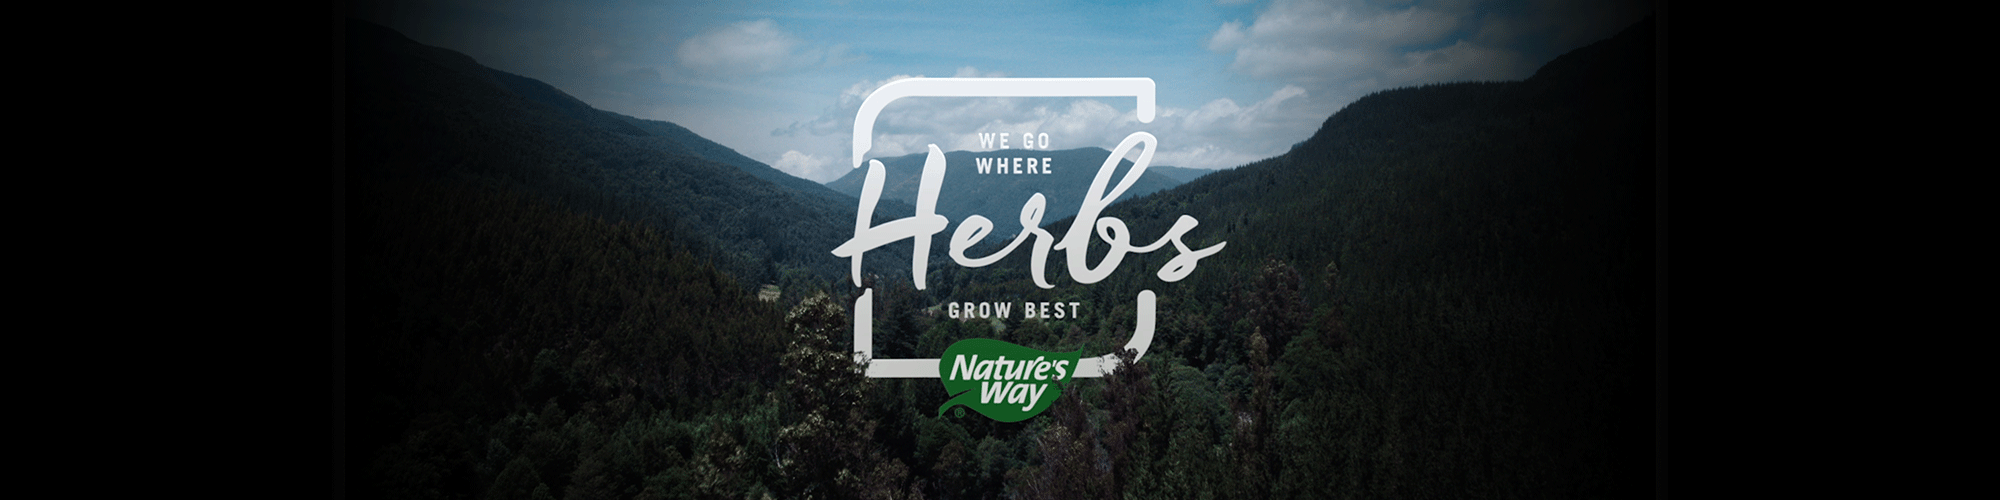 nature's-way_hero_2000x500